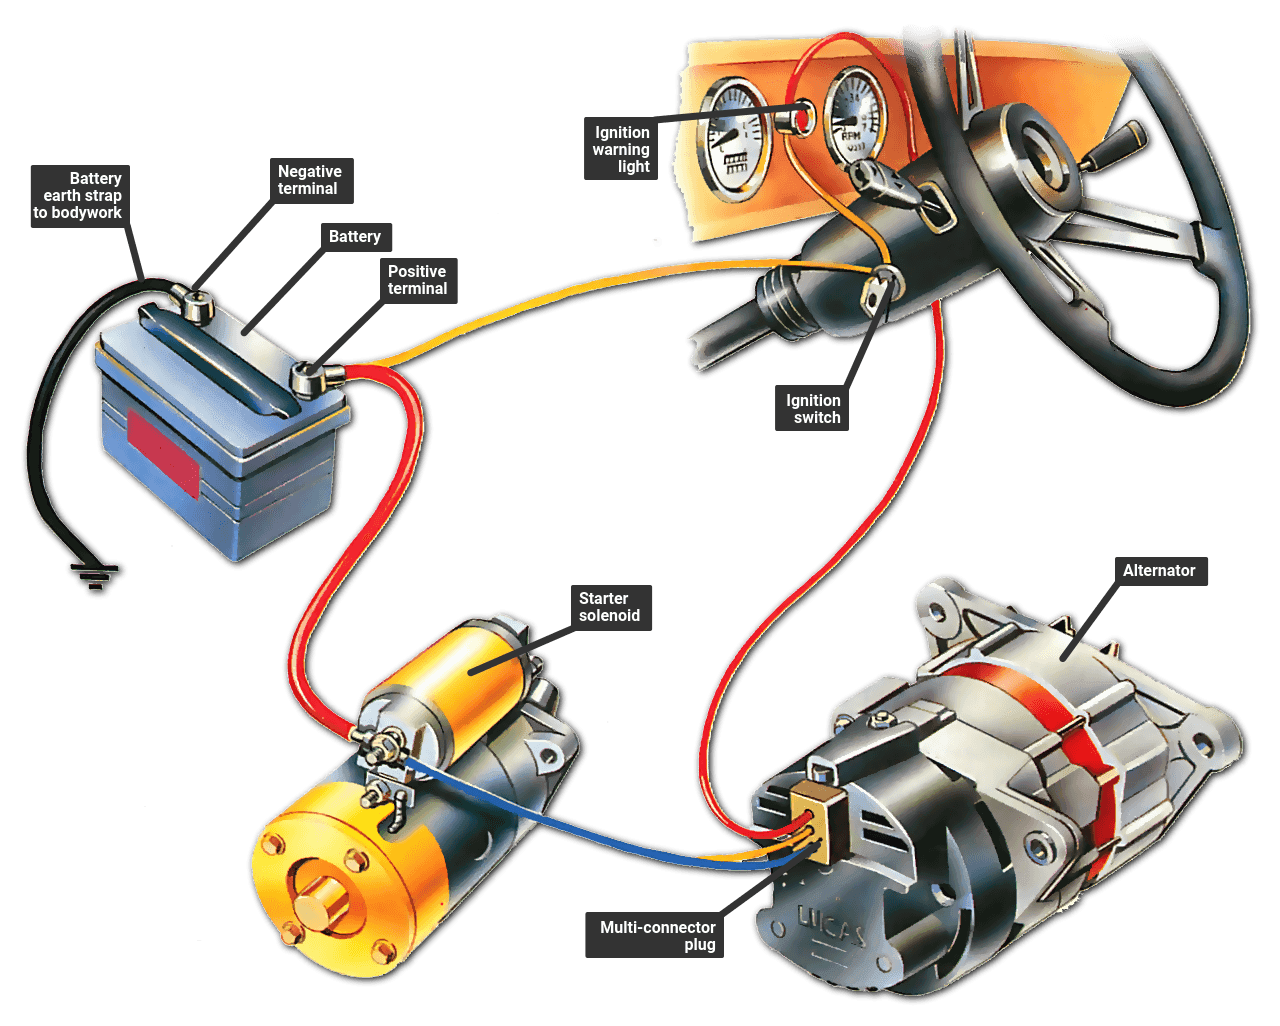 Troubleshooting The Ignition Warning Light How A Car Works Alternator Starter Motor Automotive Electrical